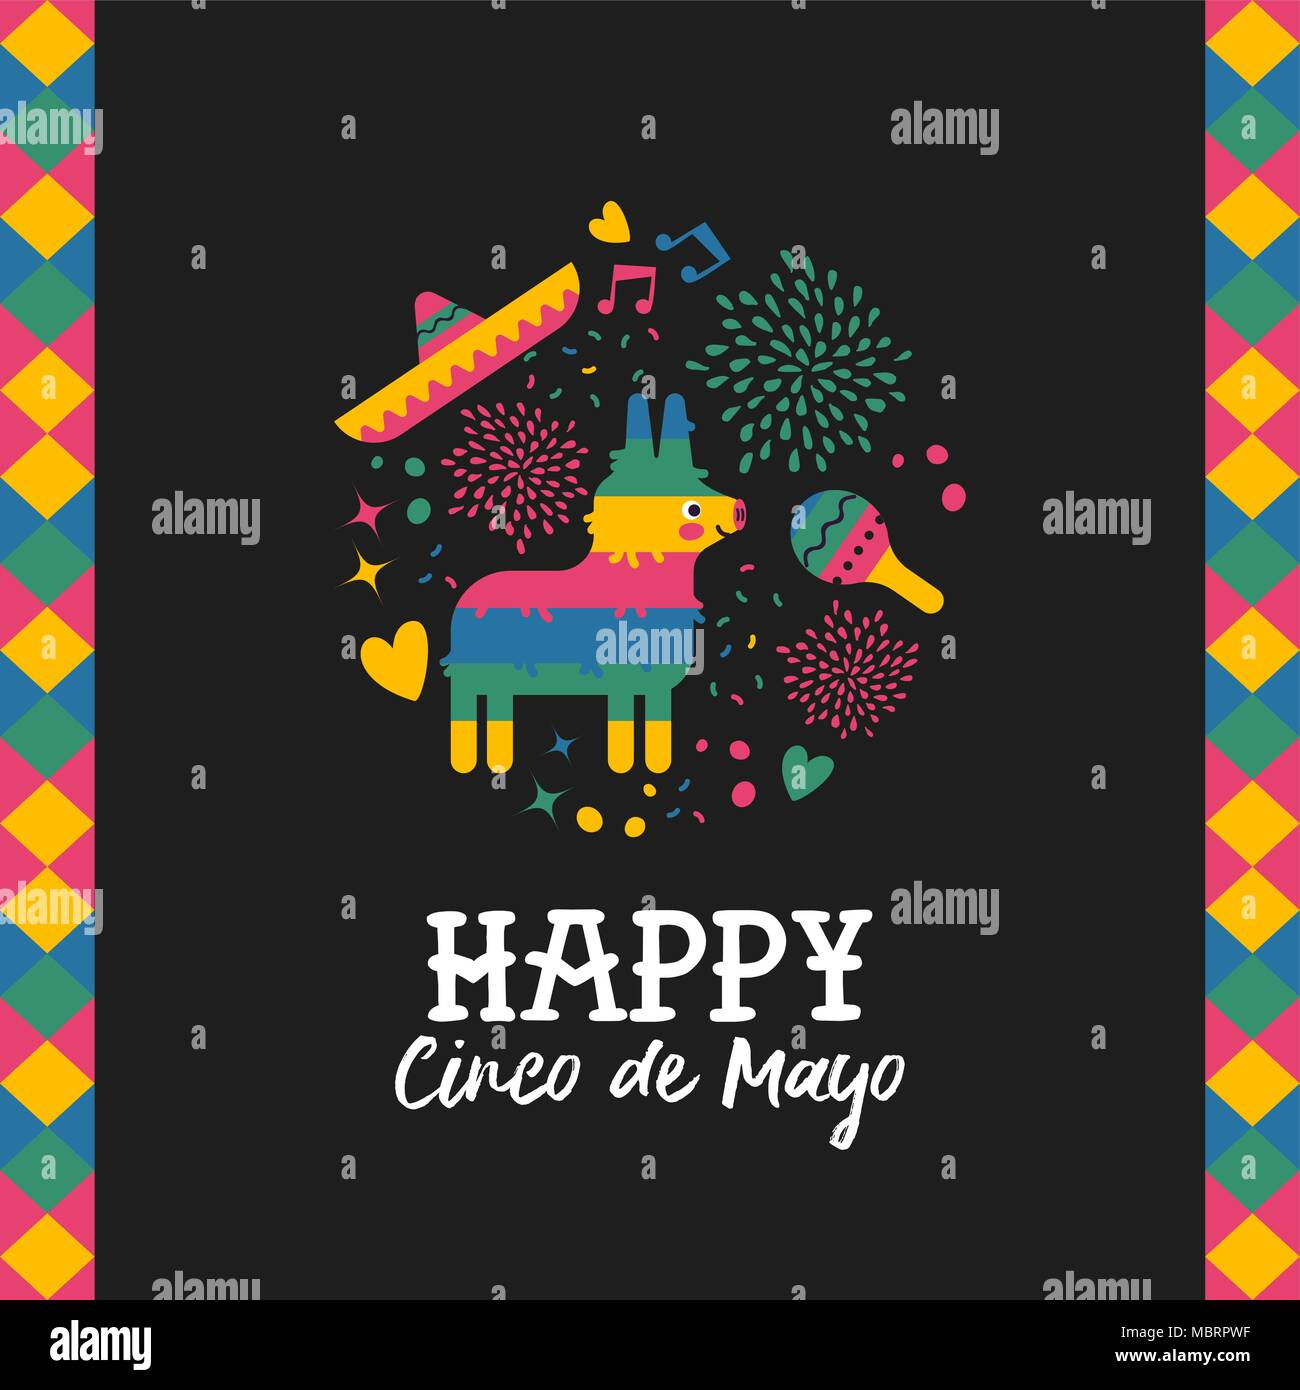 Happy cinco de mayo greeting card for traditional mexican holiday happy cinco de mayo greeting card for traditional mexican holiday with cute donkey pinata and hand drawn elements festive mexico culture illustration m4hsunfo Image collections